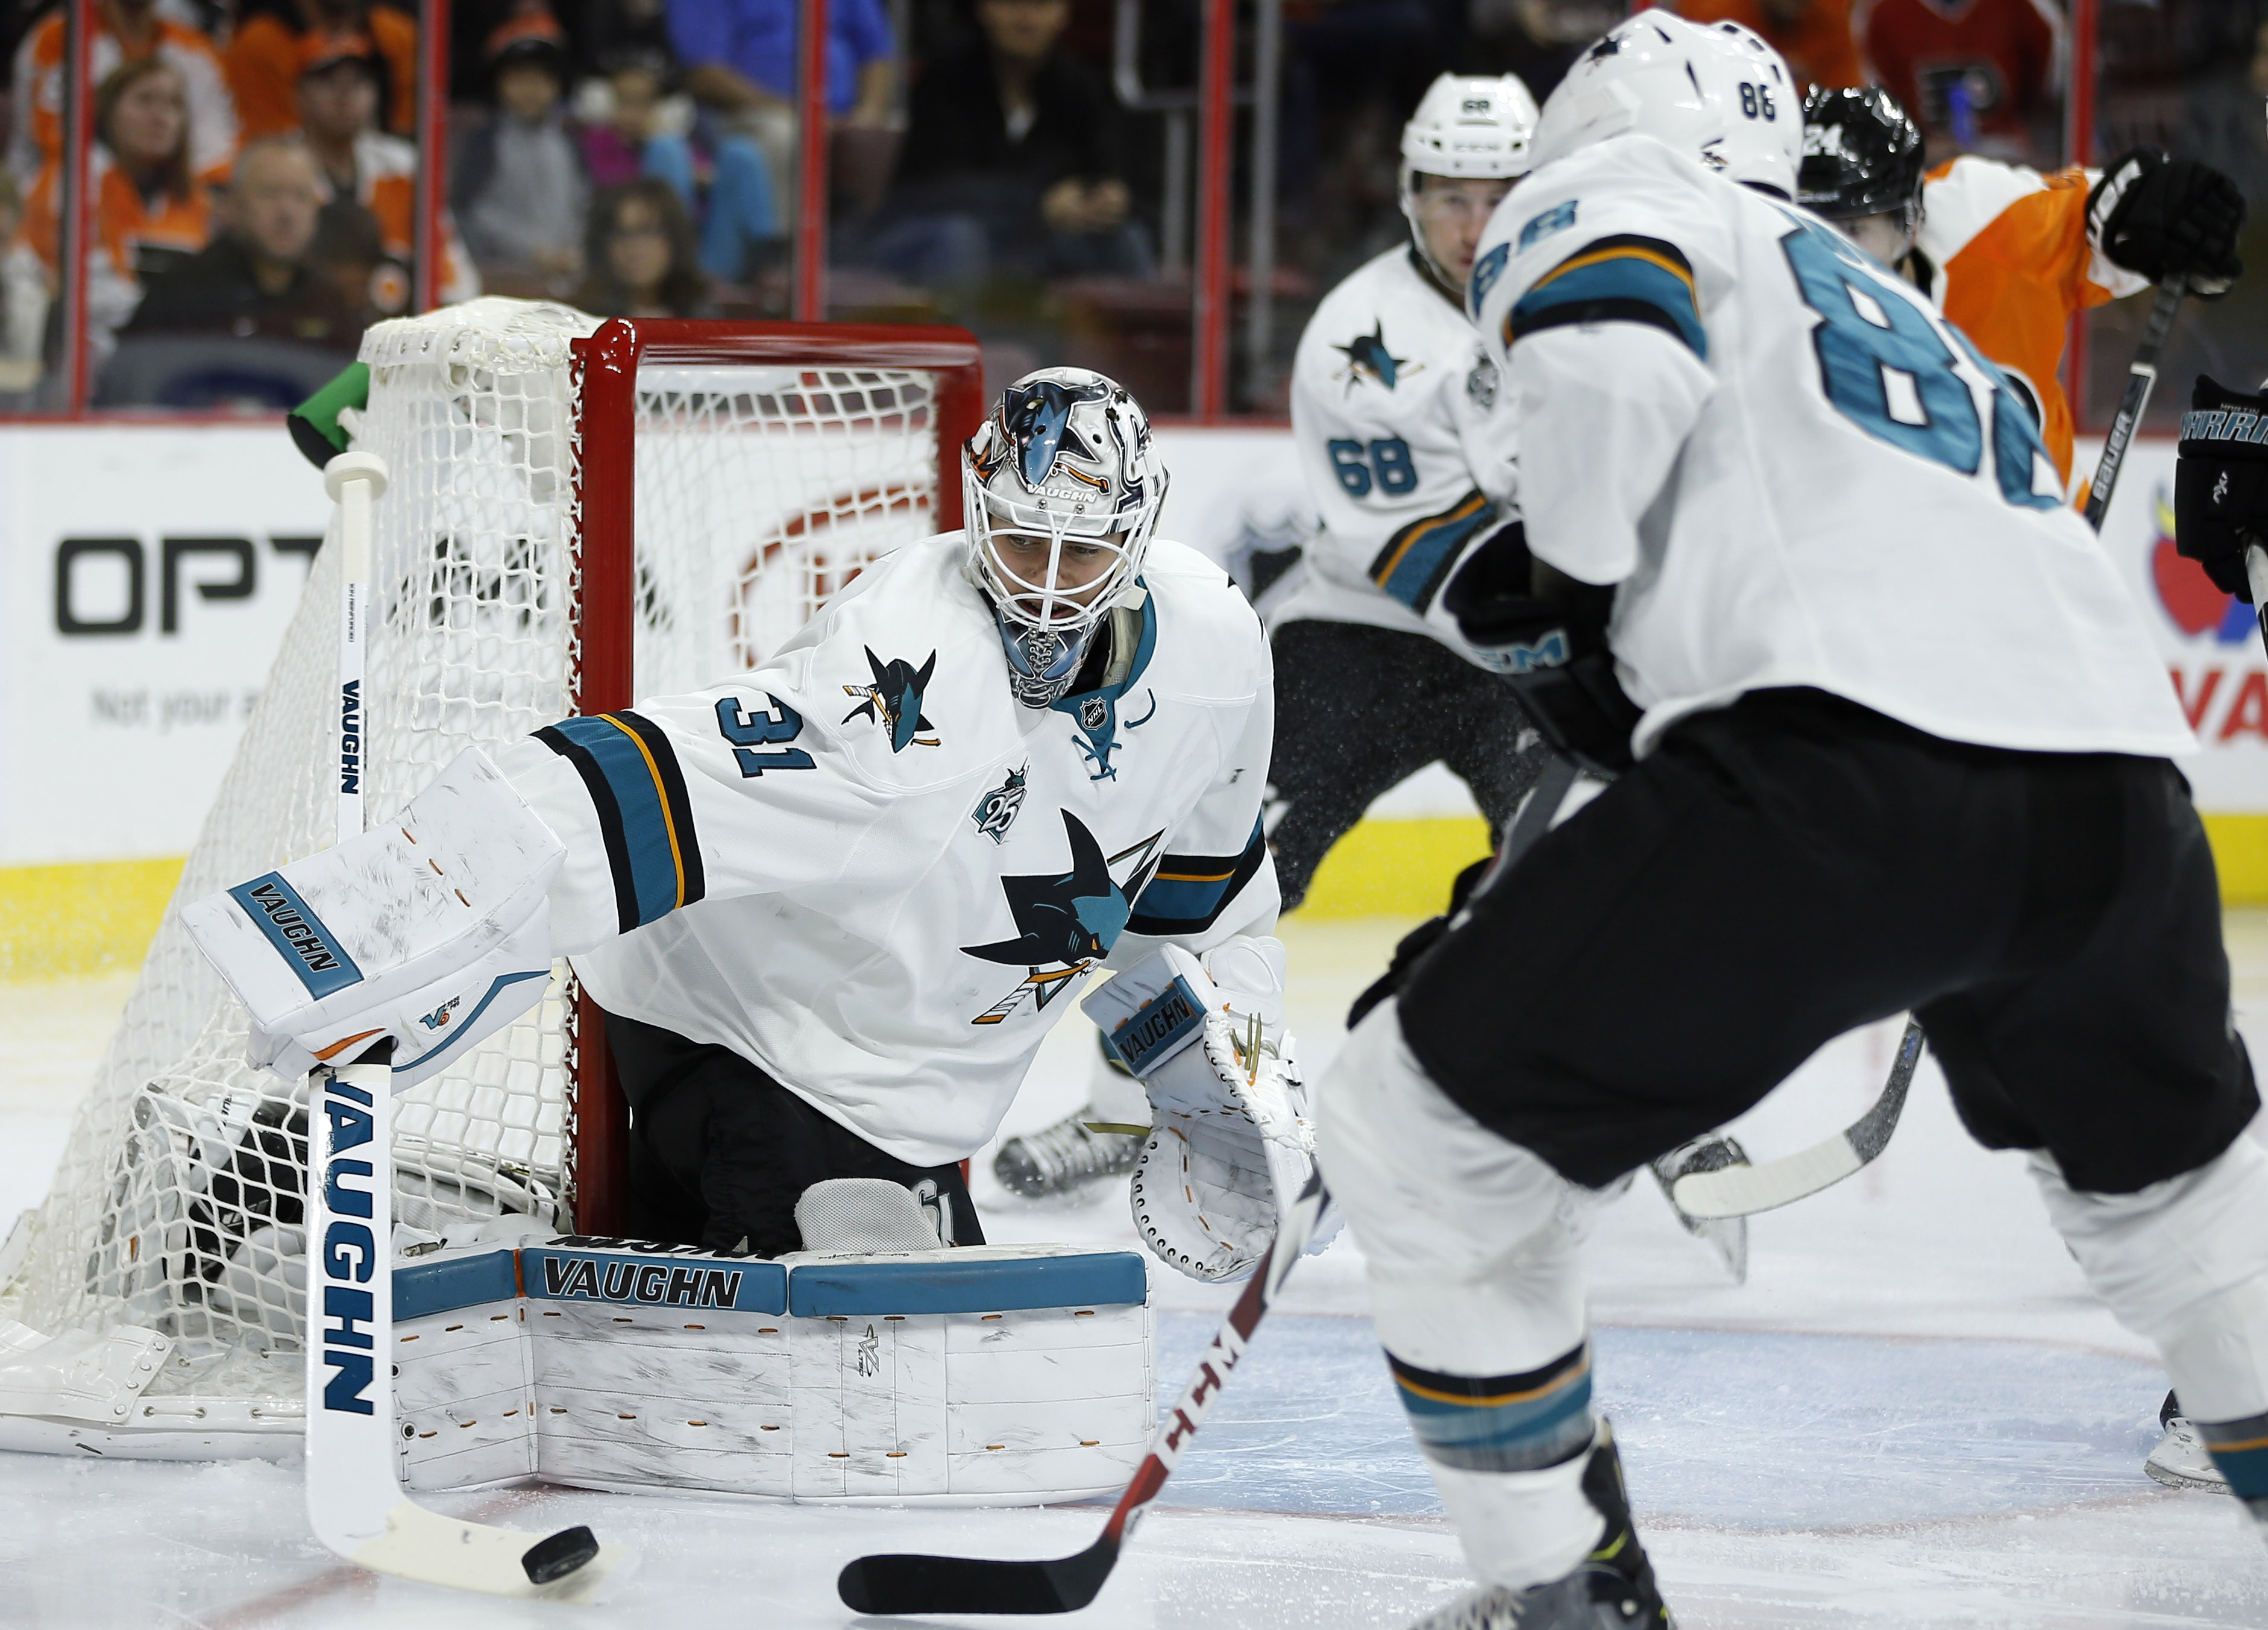 San Jose Sharks' Martin Jones, left, clears the puck as Brent Burns watches during the second period of an NHL hockey game against the Philadelphia Flyers, Thursday, Nov. 19, 2015, in Philadelphia. San Jose won 1-0 in overtime. (AP Photo/Matt Slocum)